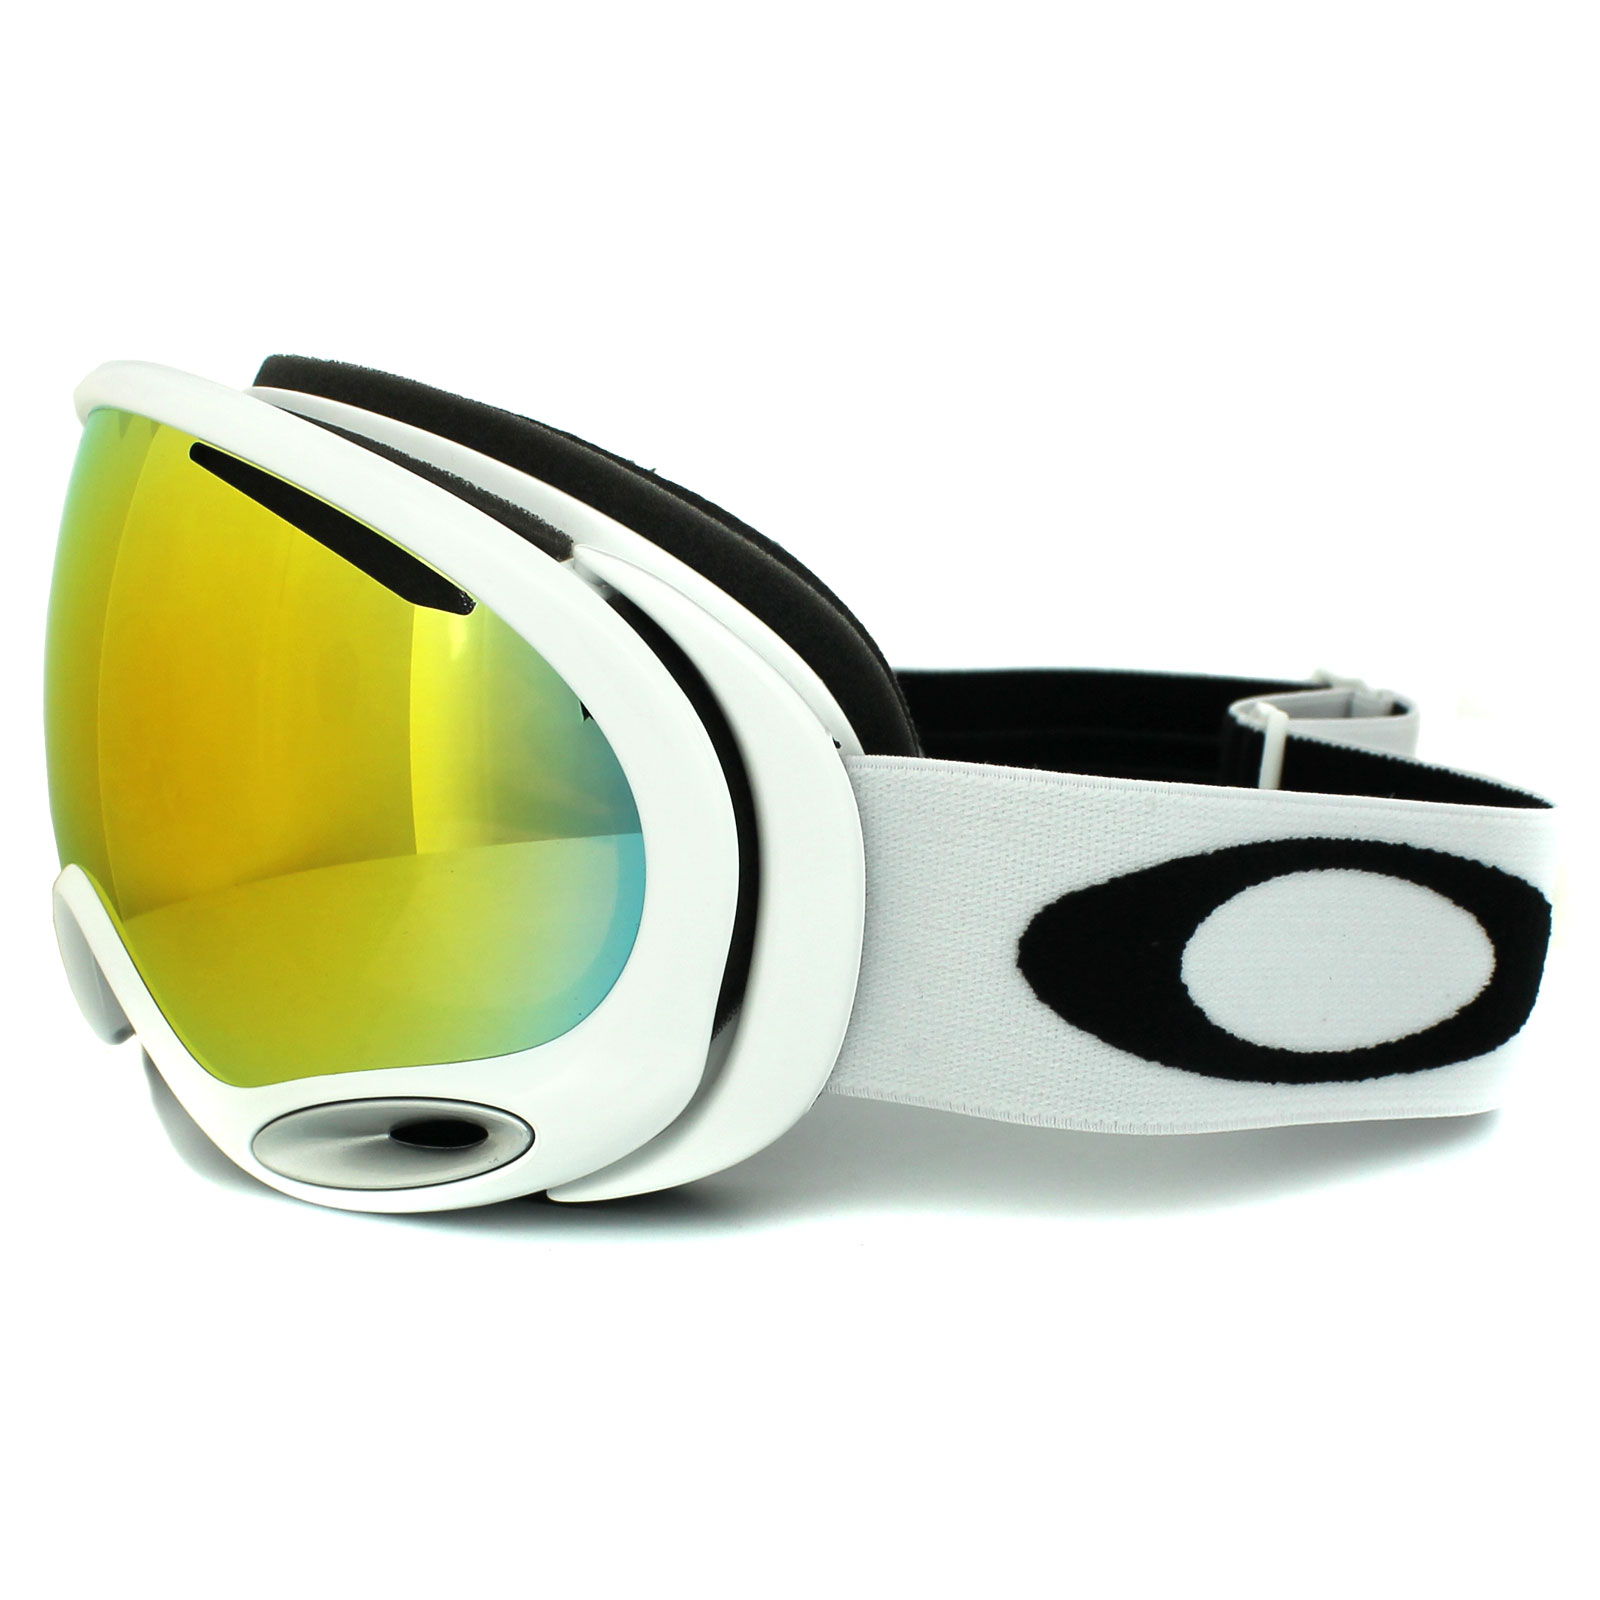 discount oakley goggles  Cheap Oakley A Frame 2.0 Goggles - Discounted Sunglasses